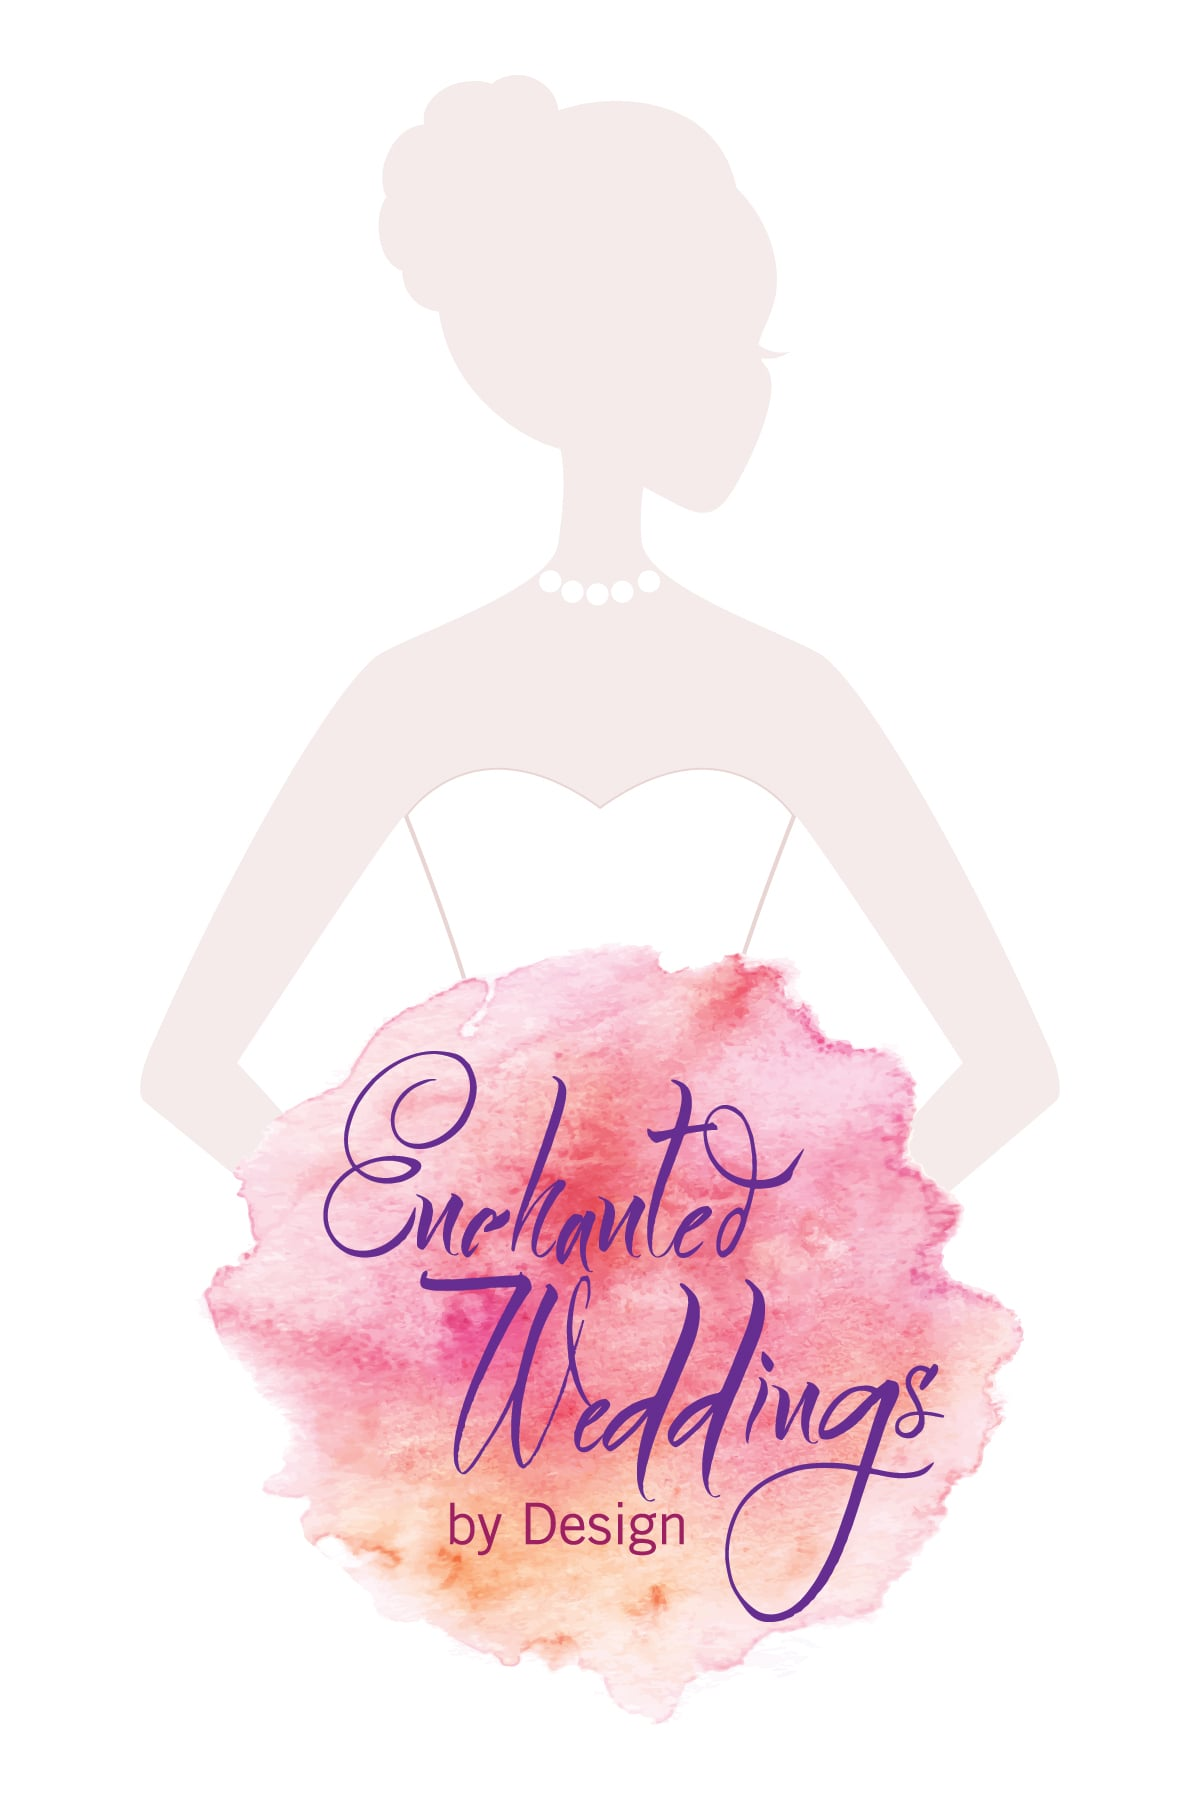 Enchanted Weddings by Design